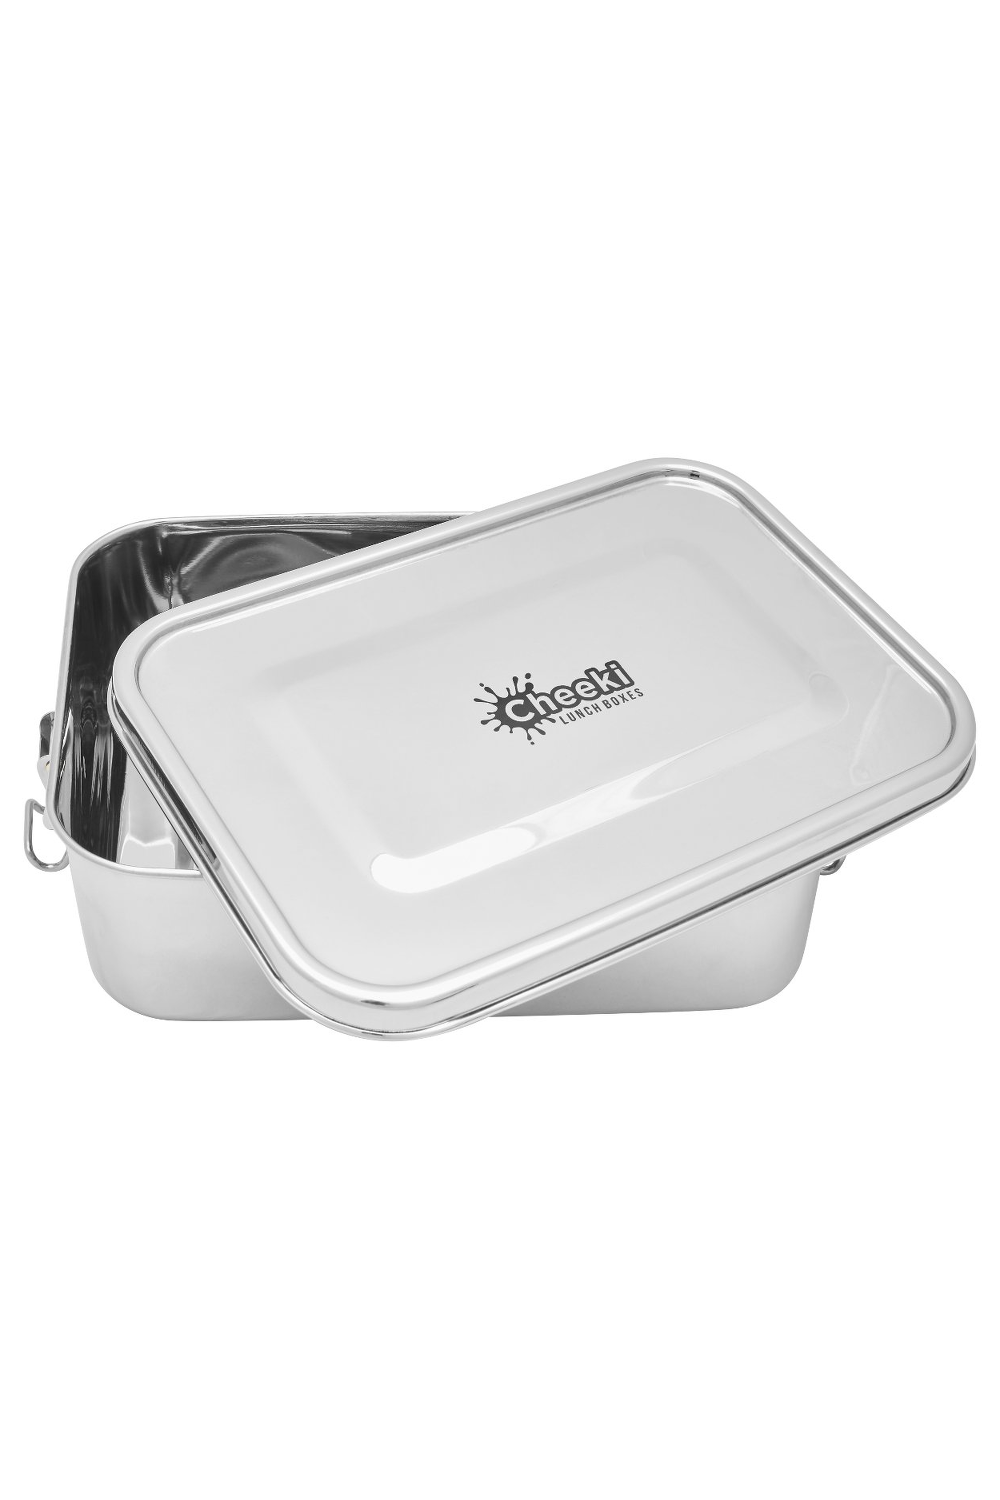 Cheeki | 1.6 litre lunch box | Plastic Free Living | Environmentally Friendly Homewares